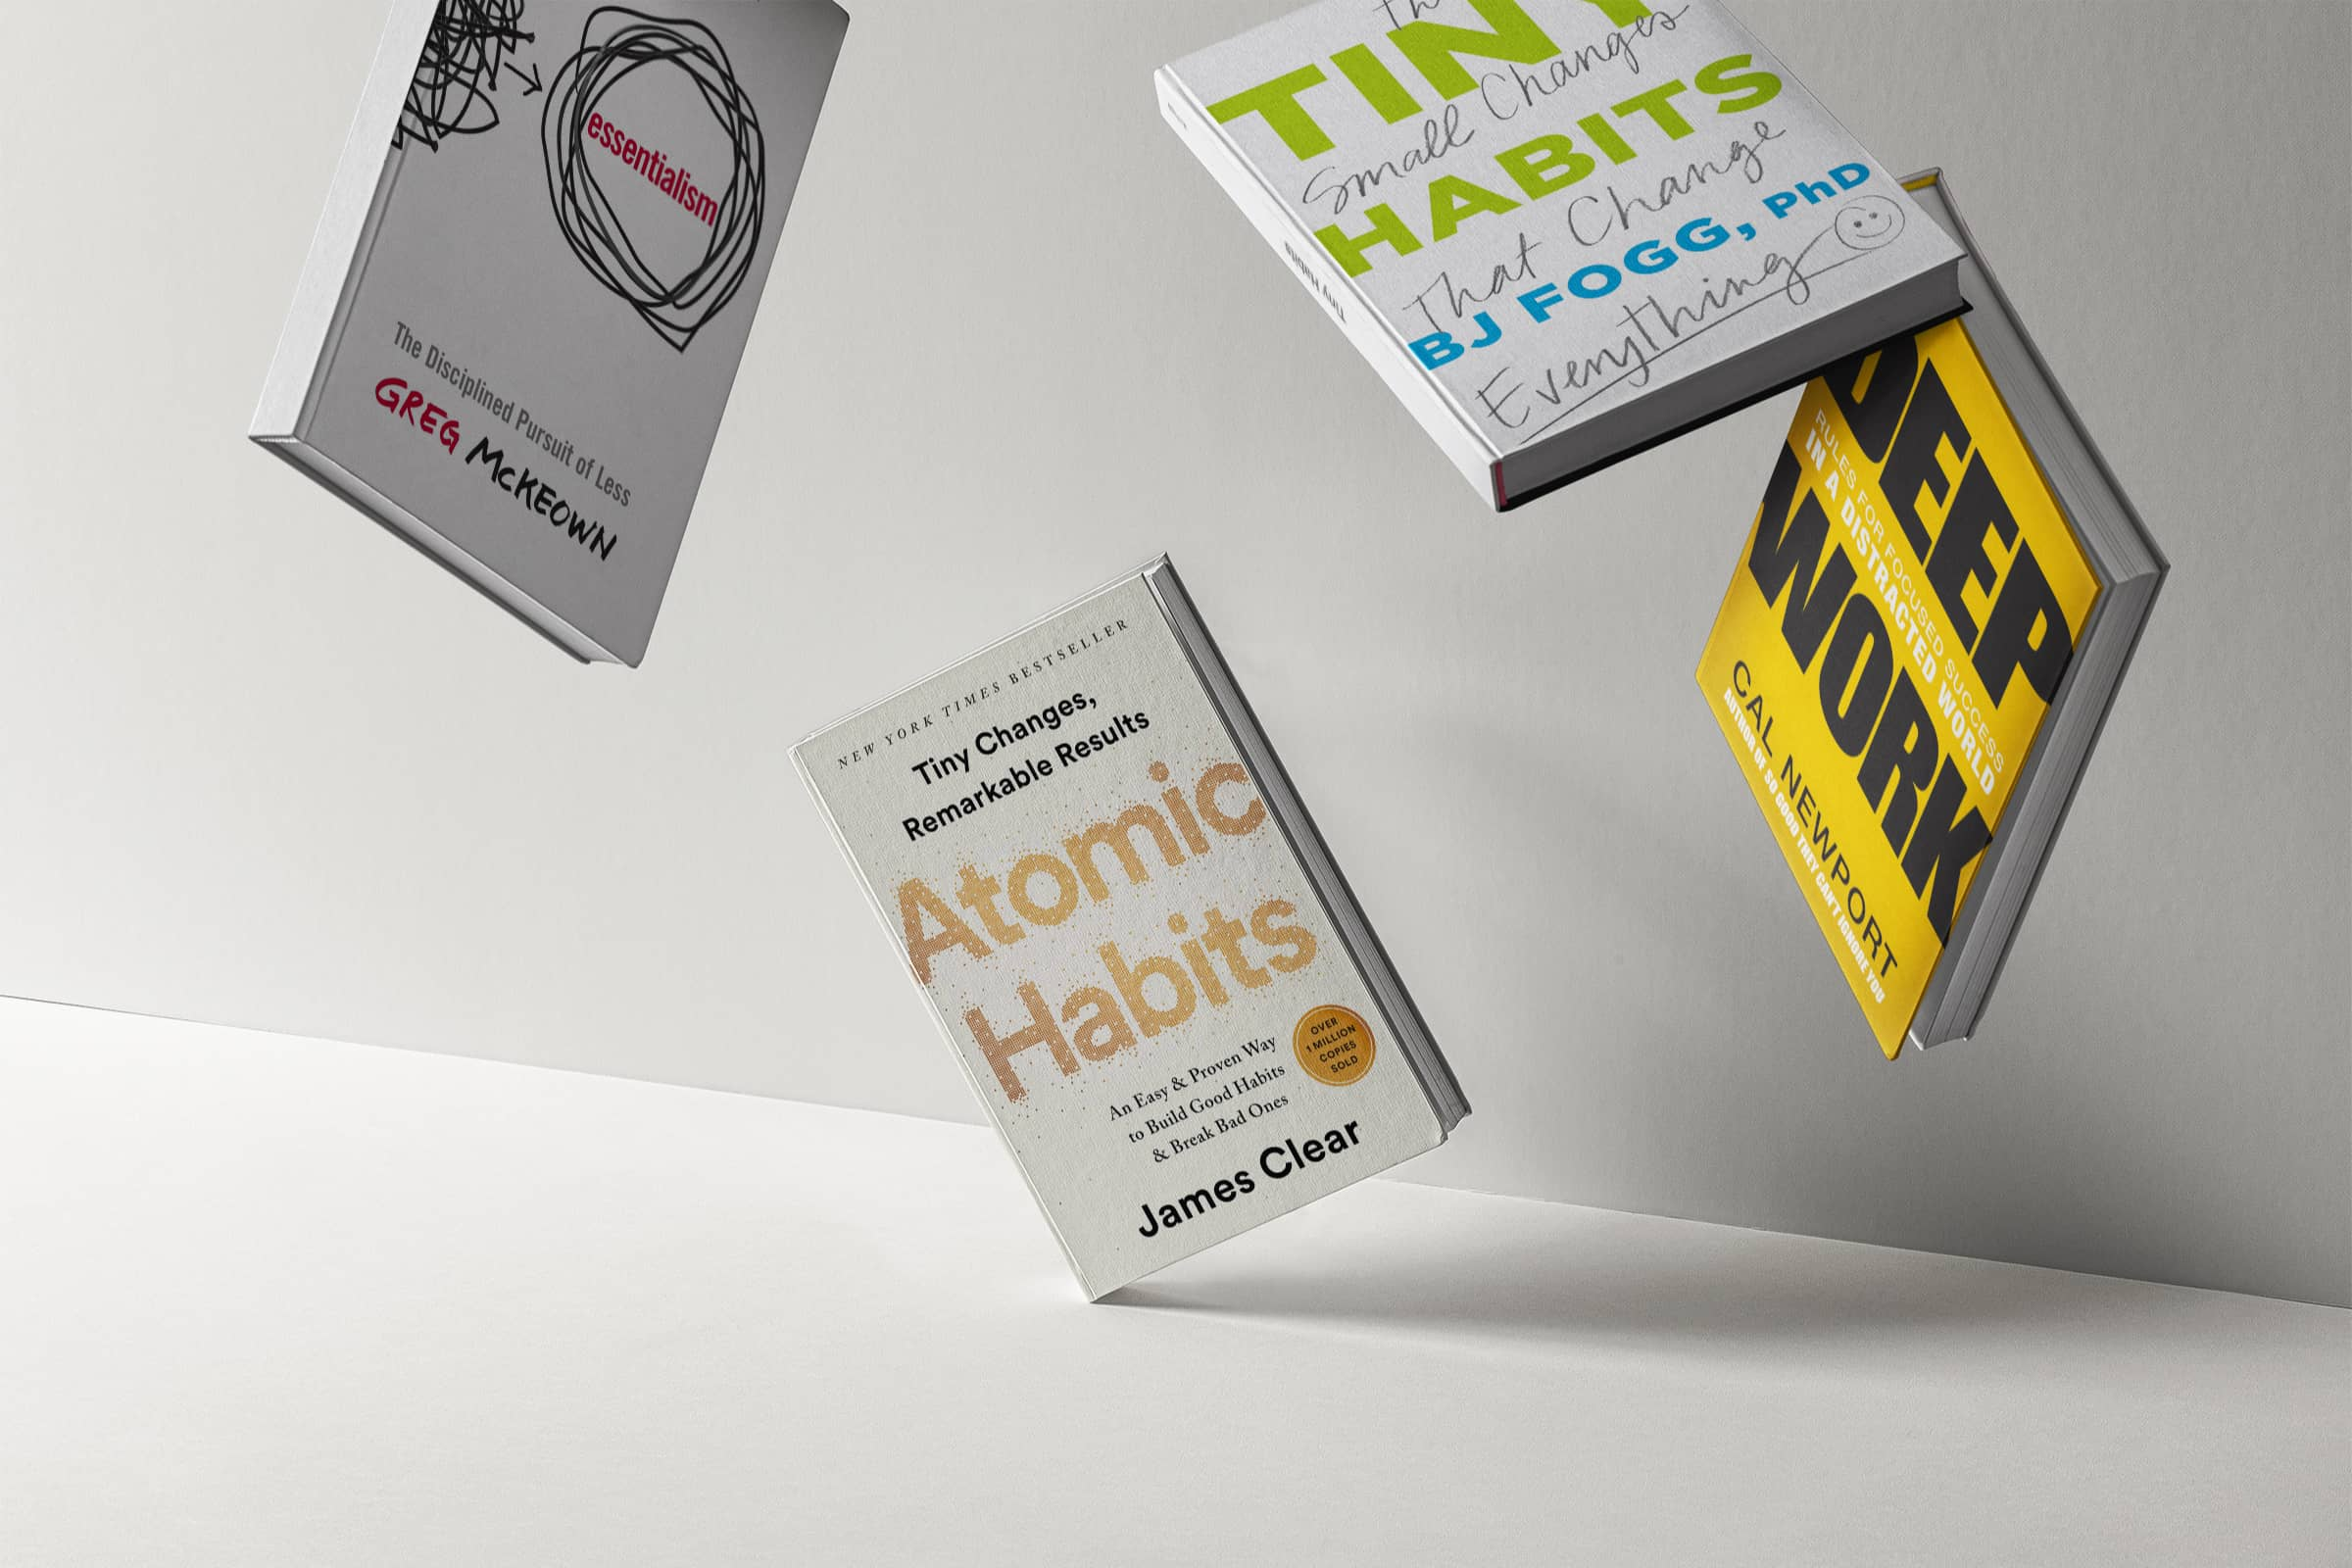 11 Books That Will Help You Create Better Habits